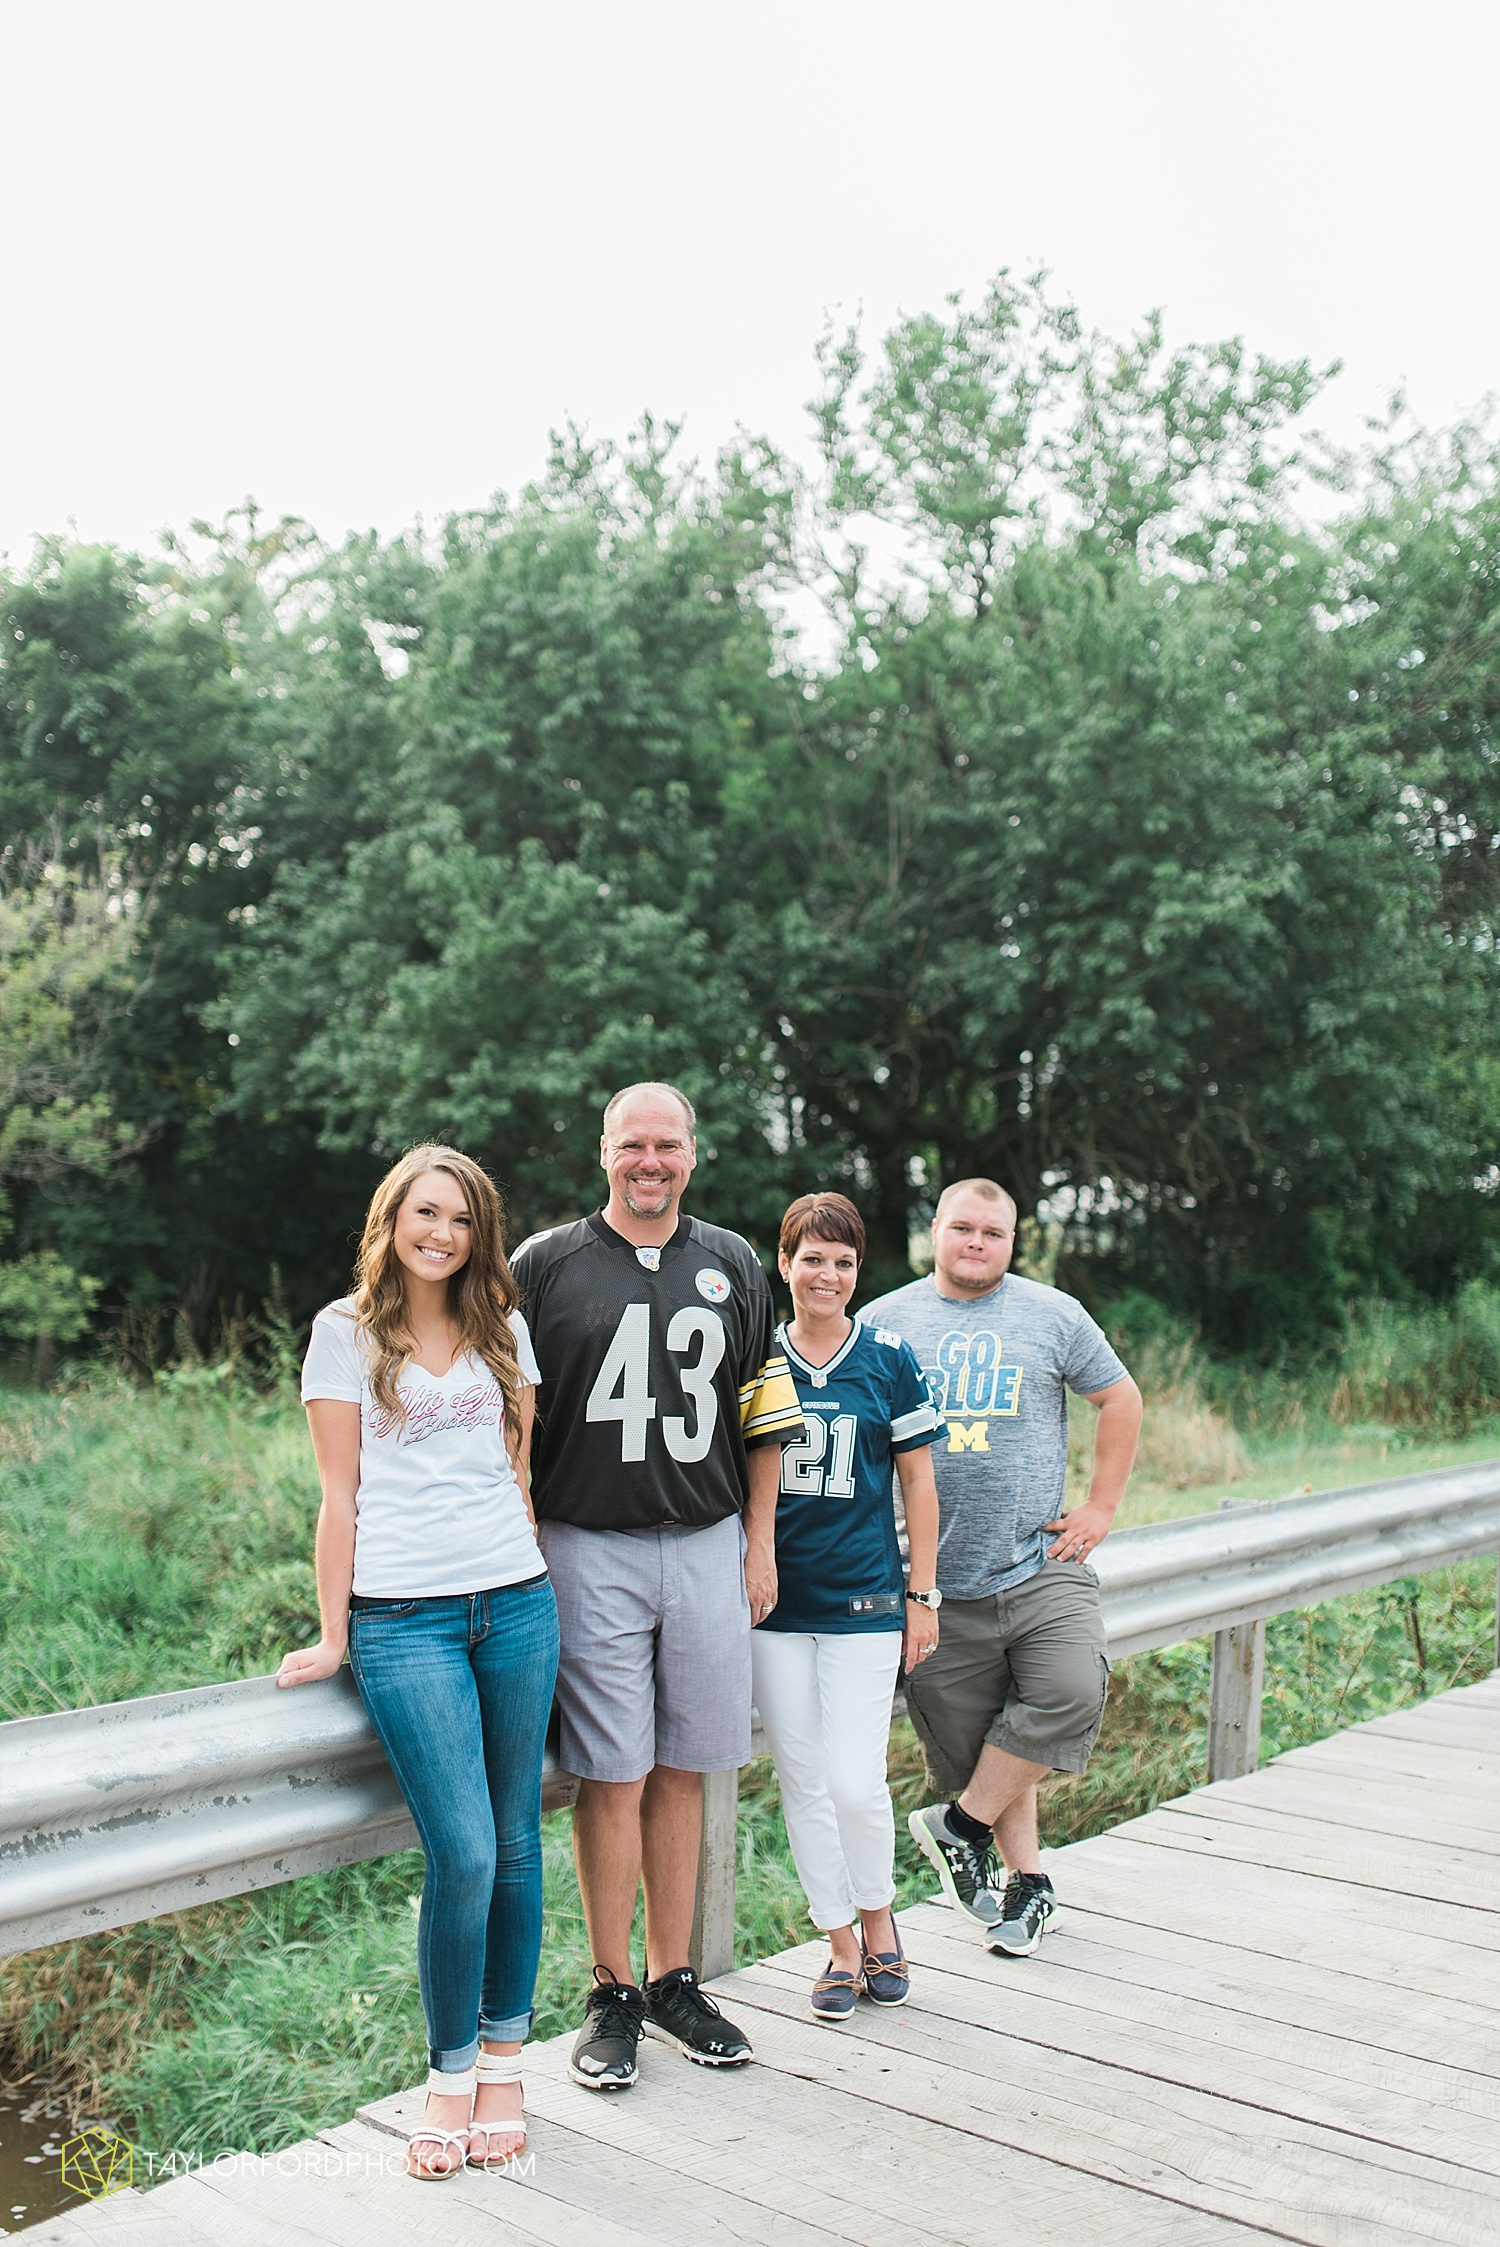 fort_wayne_indiana_family_photographer_taylor_ford_bryan_ohio_family_photographer_0371.jpg